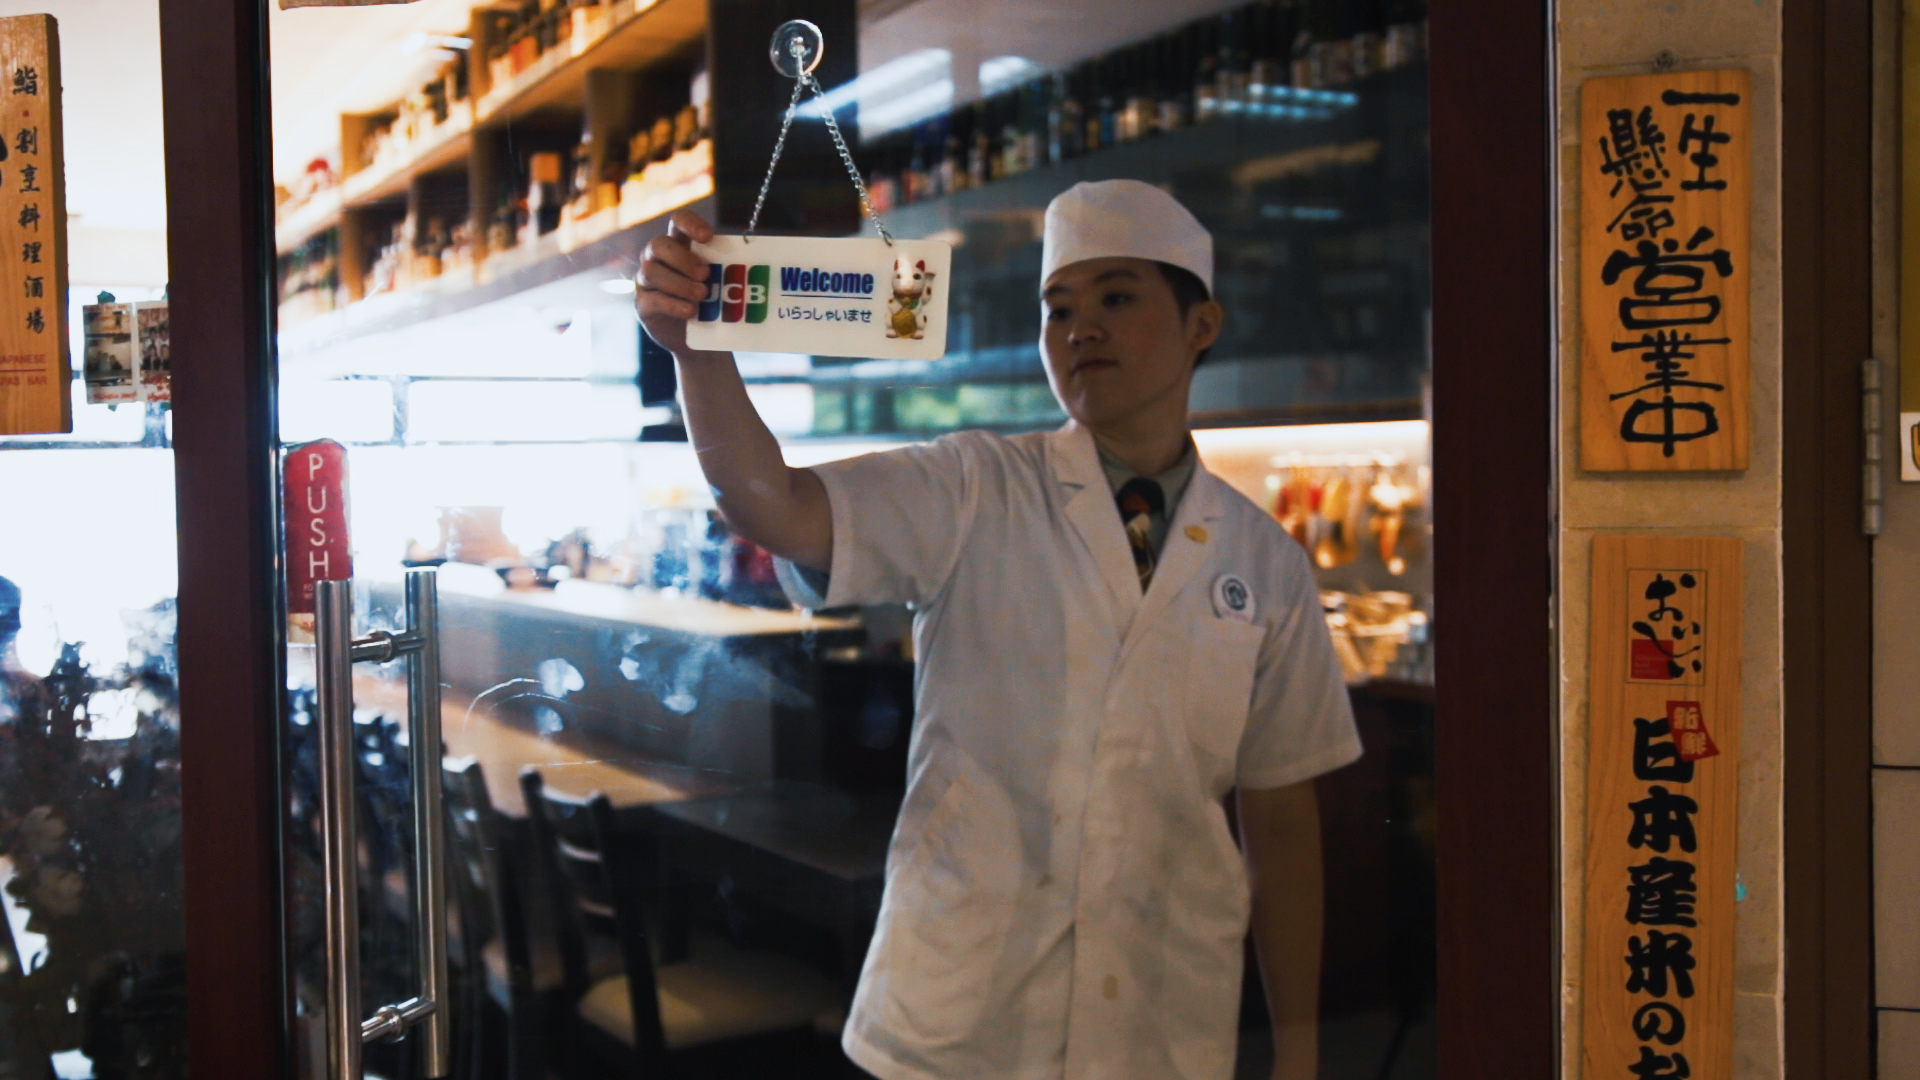 Sushi Chef Aeron Chan opens shop welcome sign